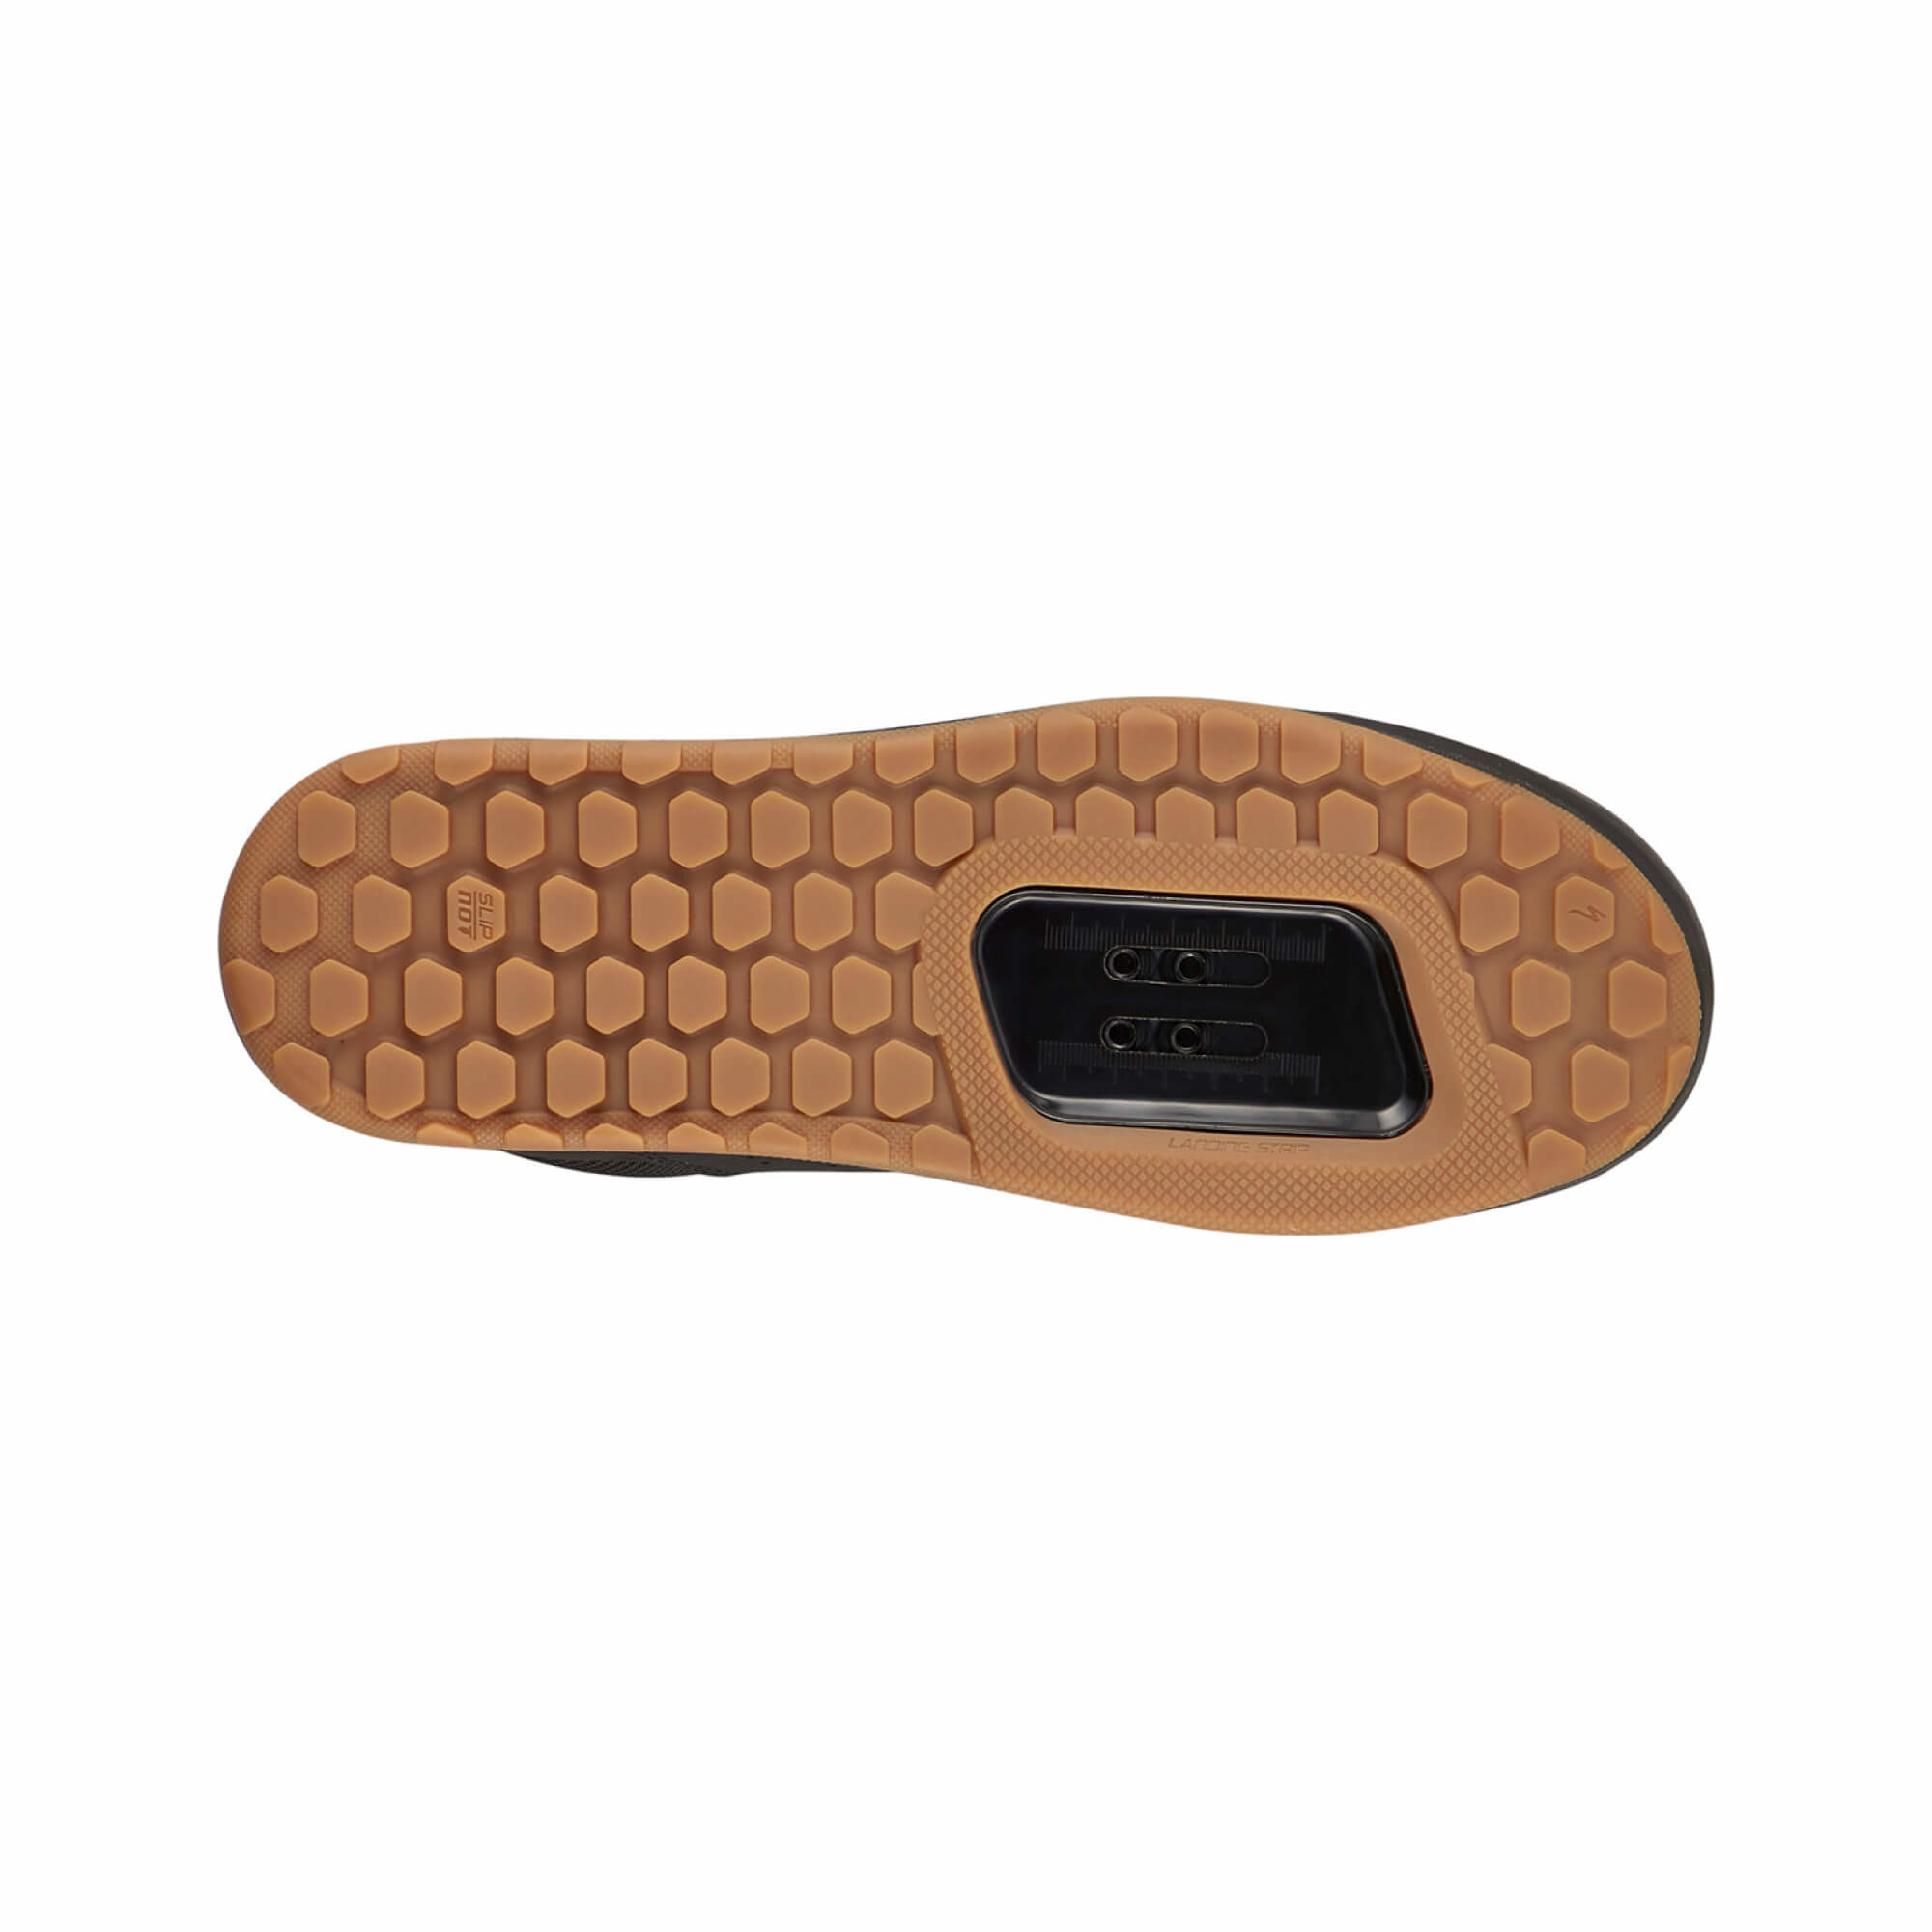 2FO Roost Clip MTB Shoe-5